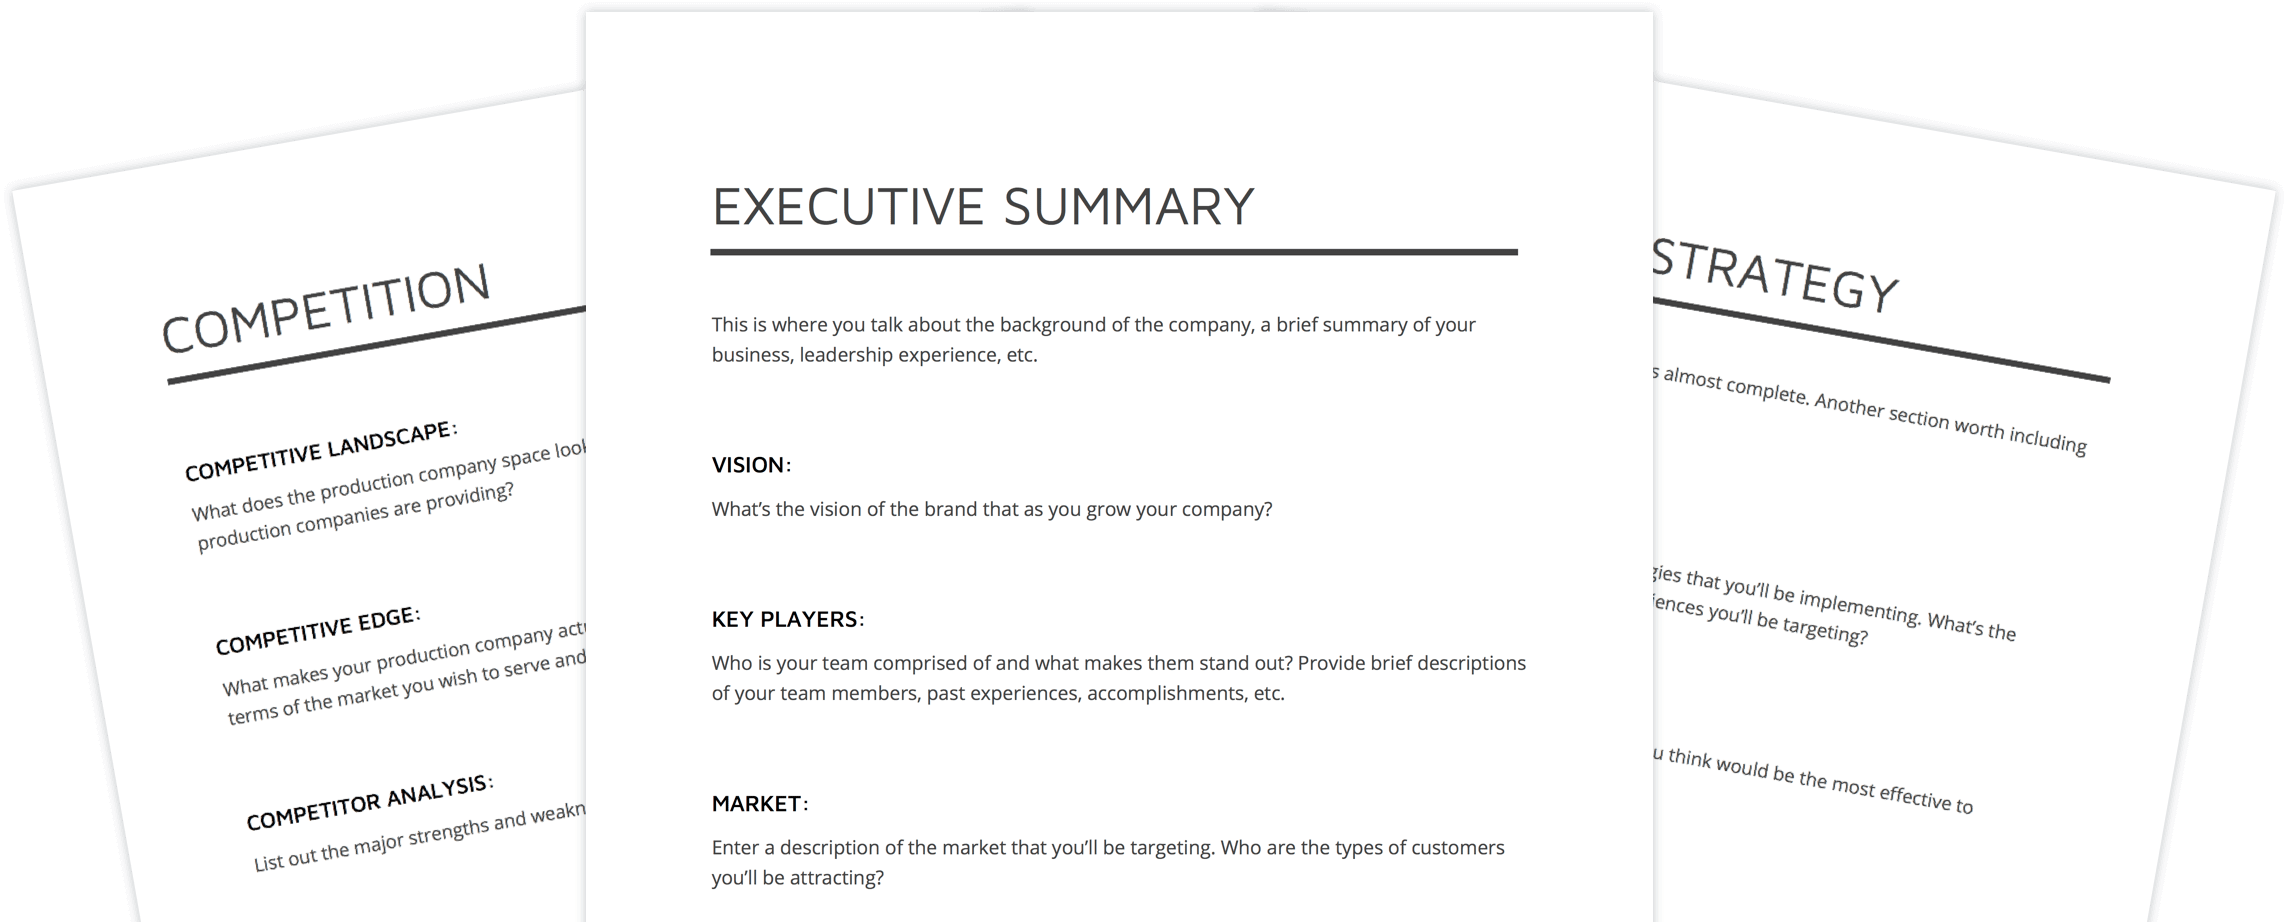 Business Plan Template for Video Production - StudioBinder